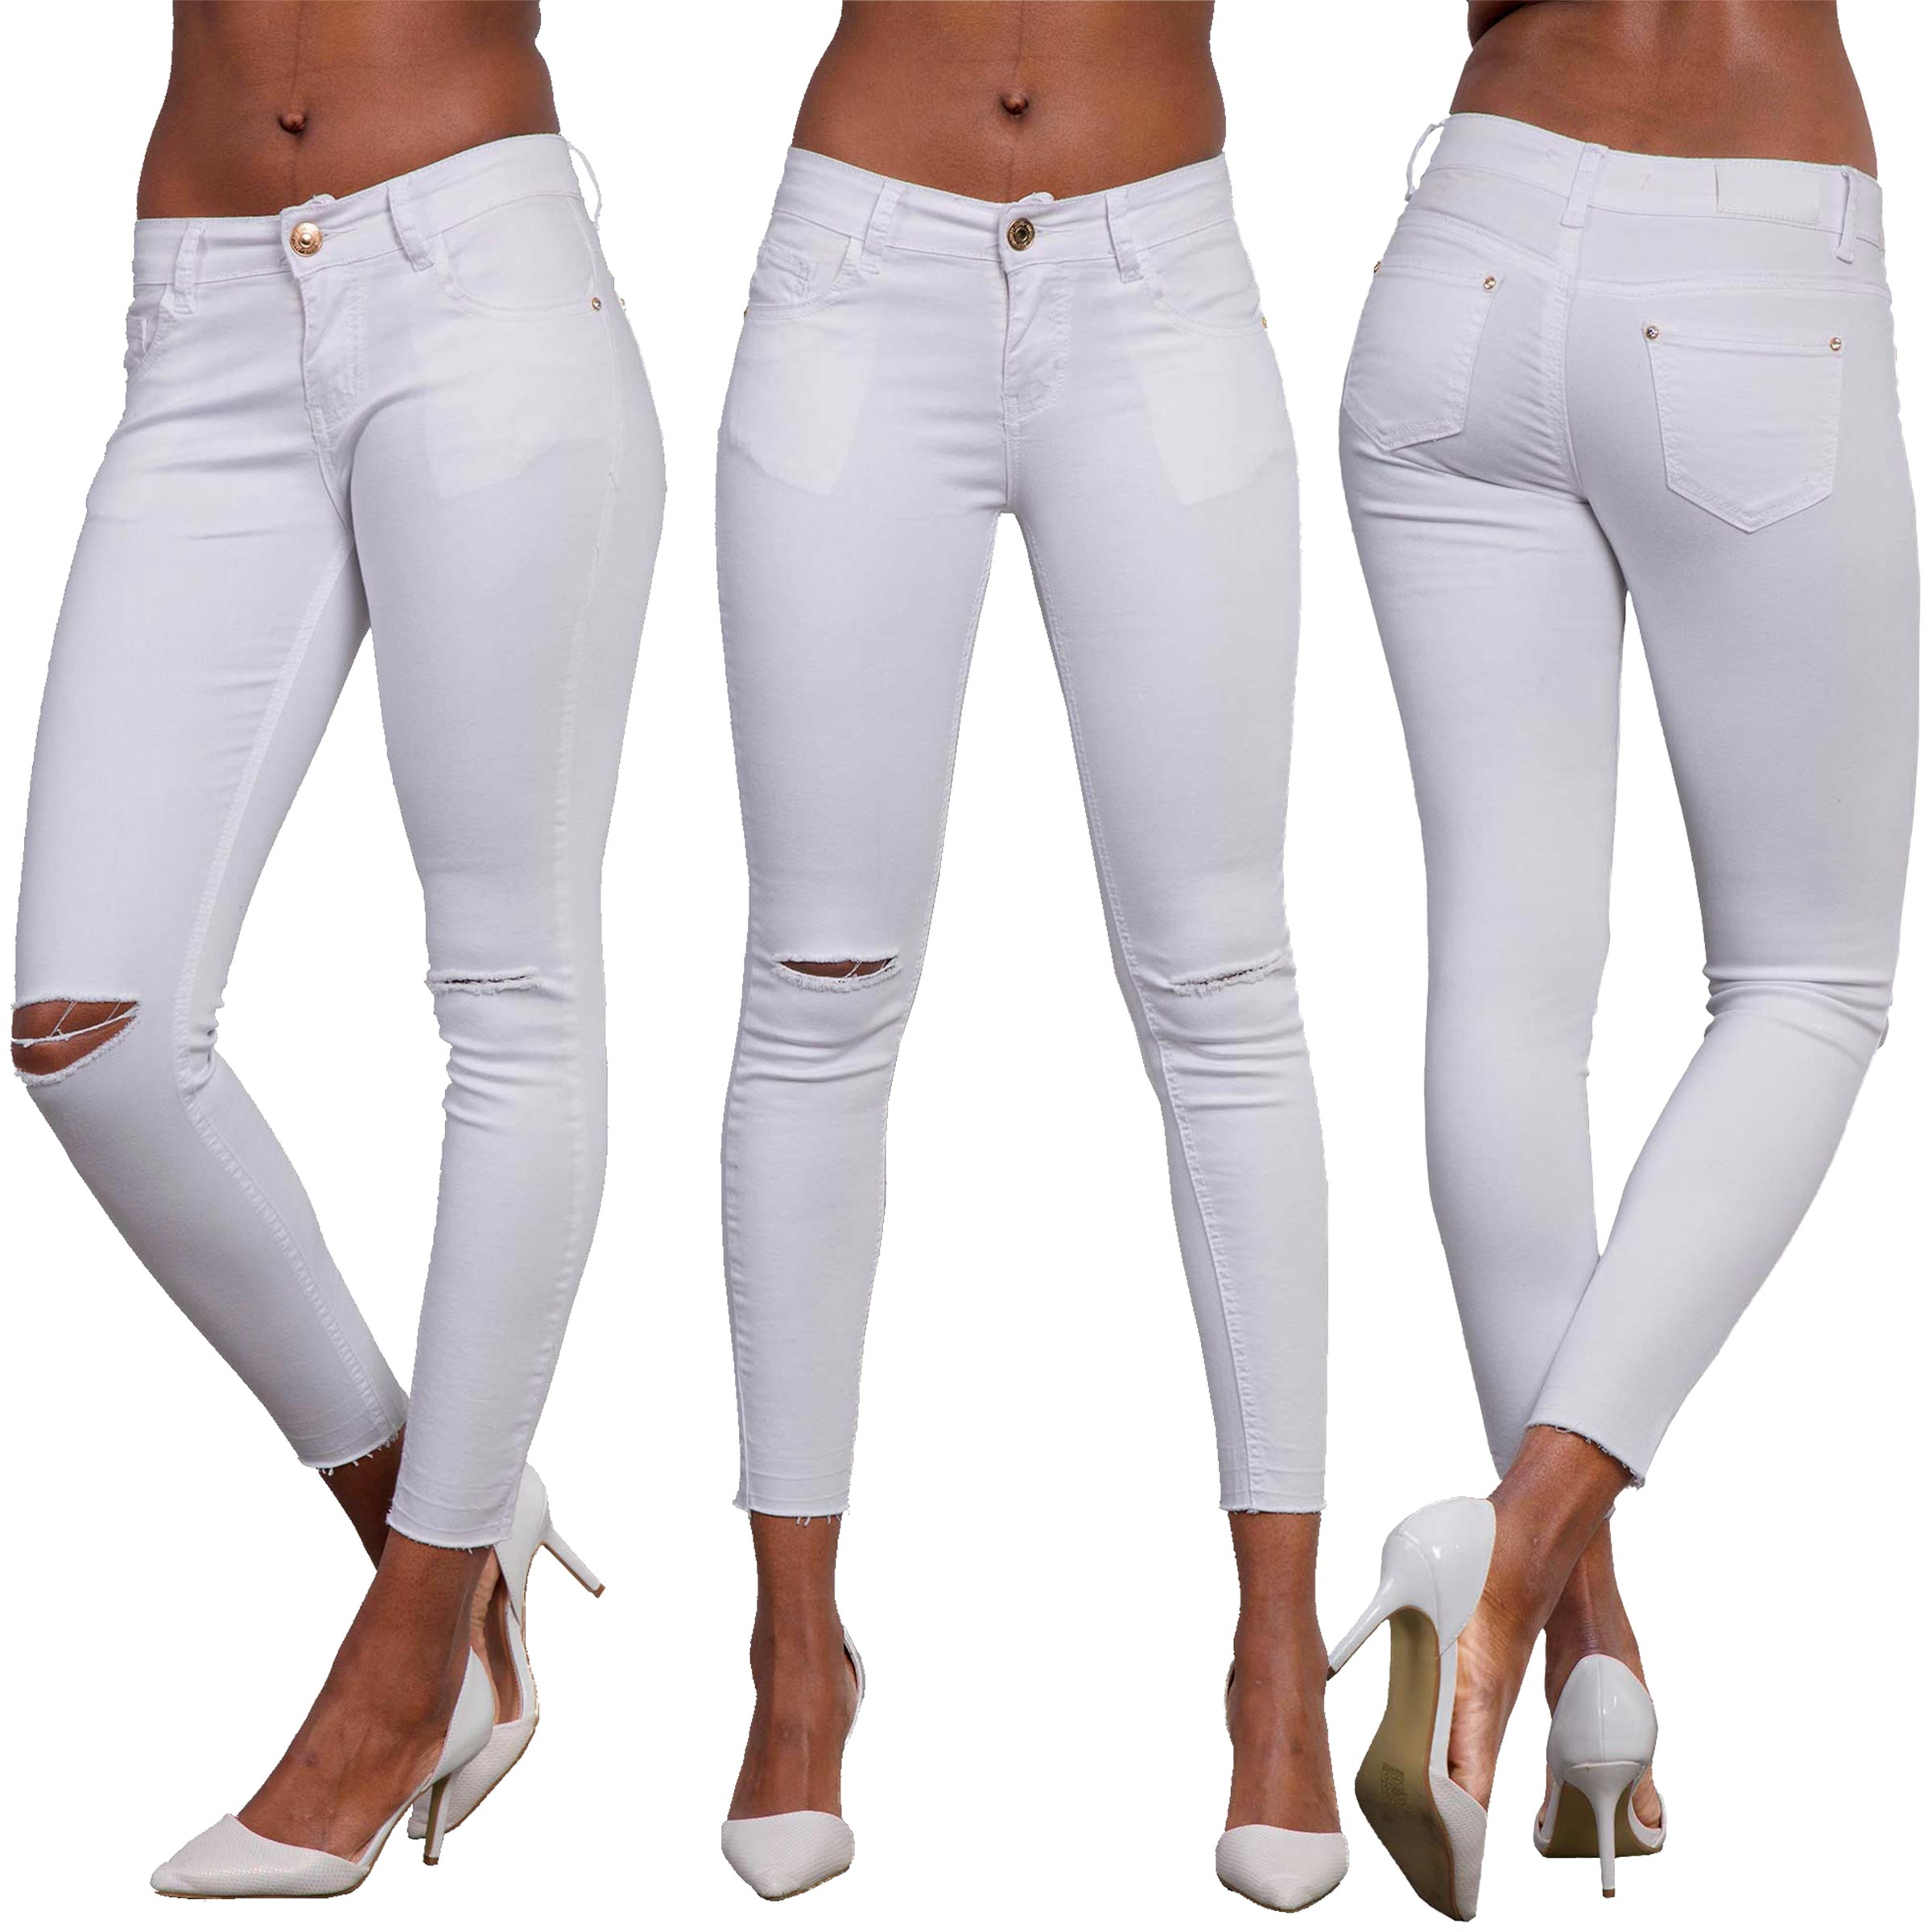 ead03ef58cd334 Details about Womens White Stretchy Skinny Jeans Ladies Ripped Knee  Jeggings Trousers Pants